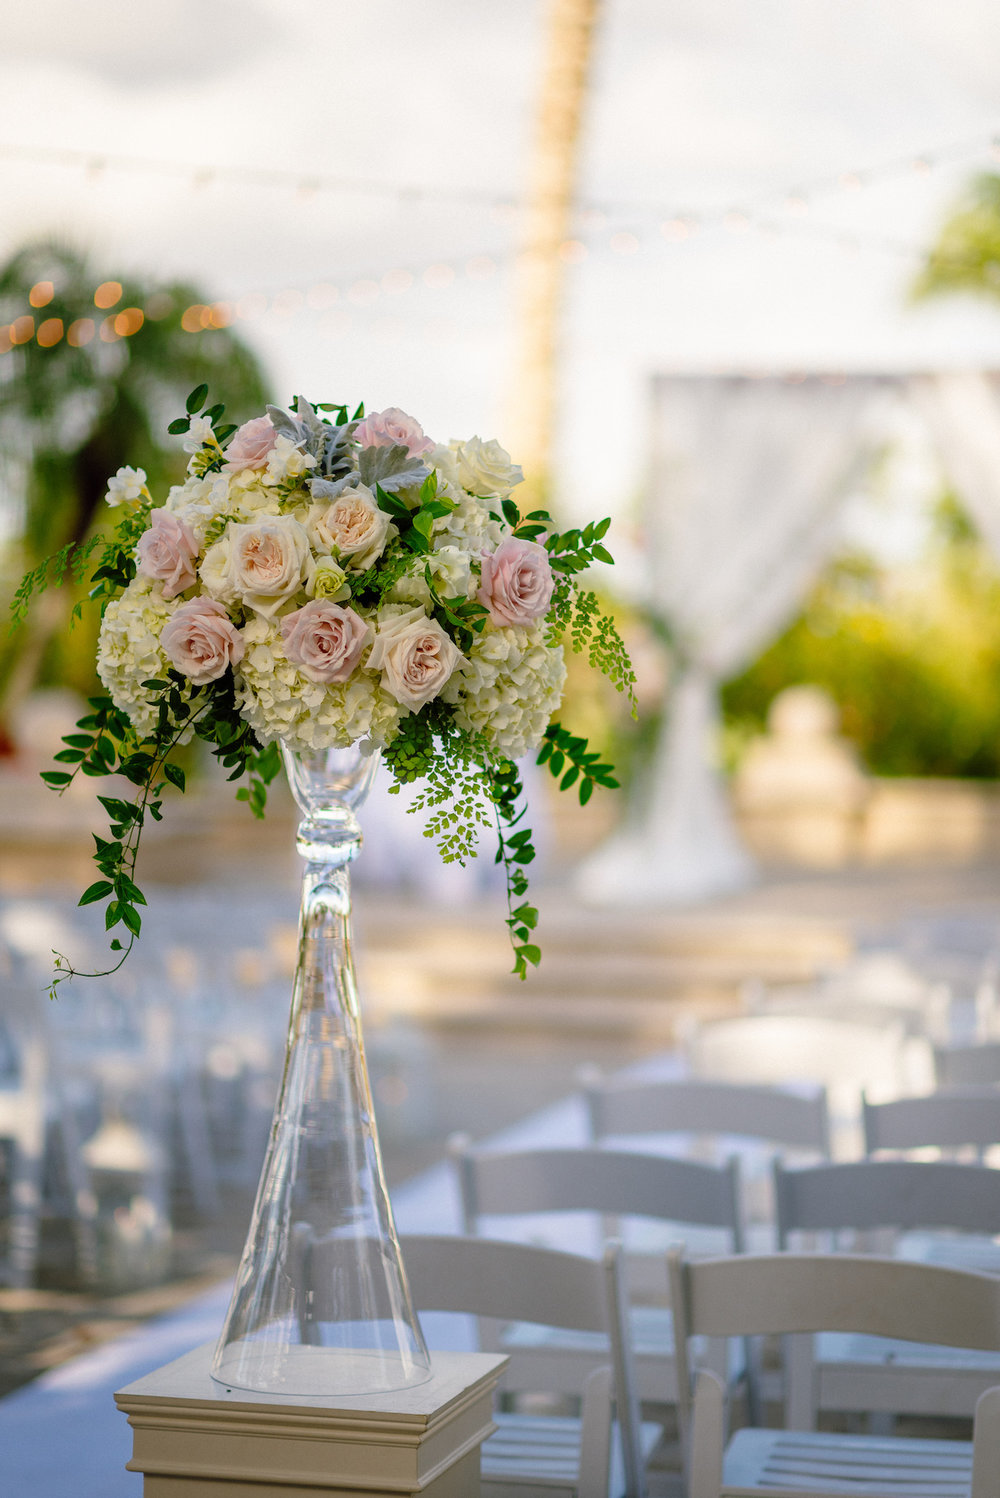 Pink Roses Wedding Ceremony Matt Steeves Photography Naples Florida.jpg